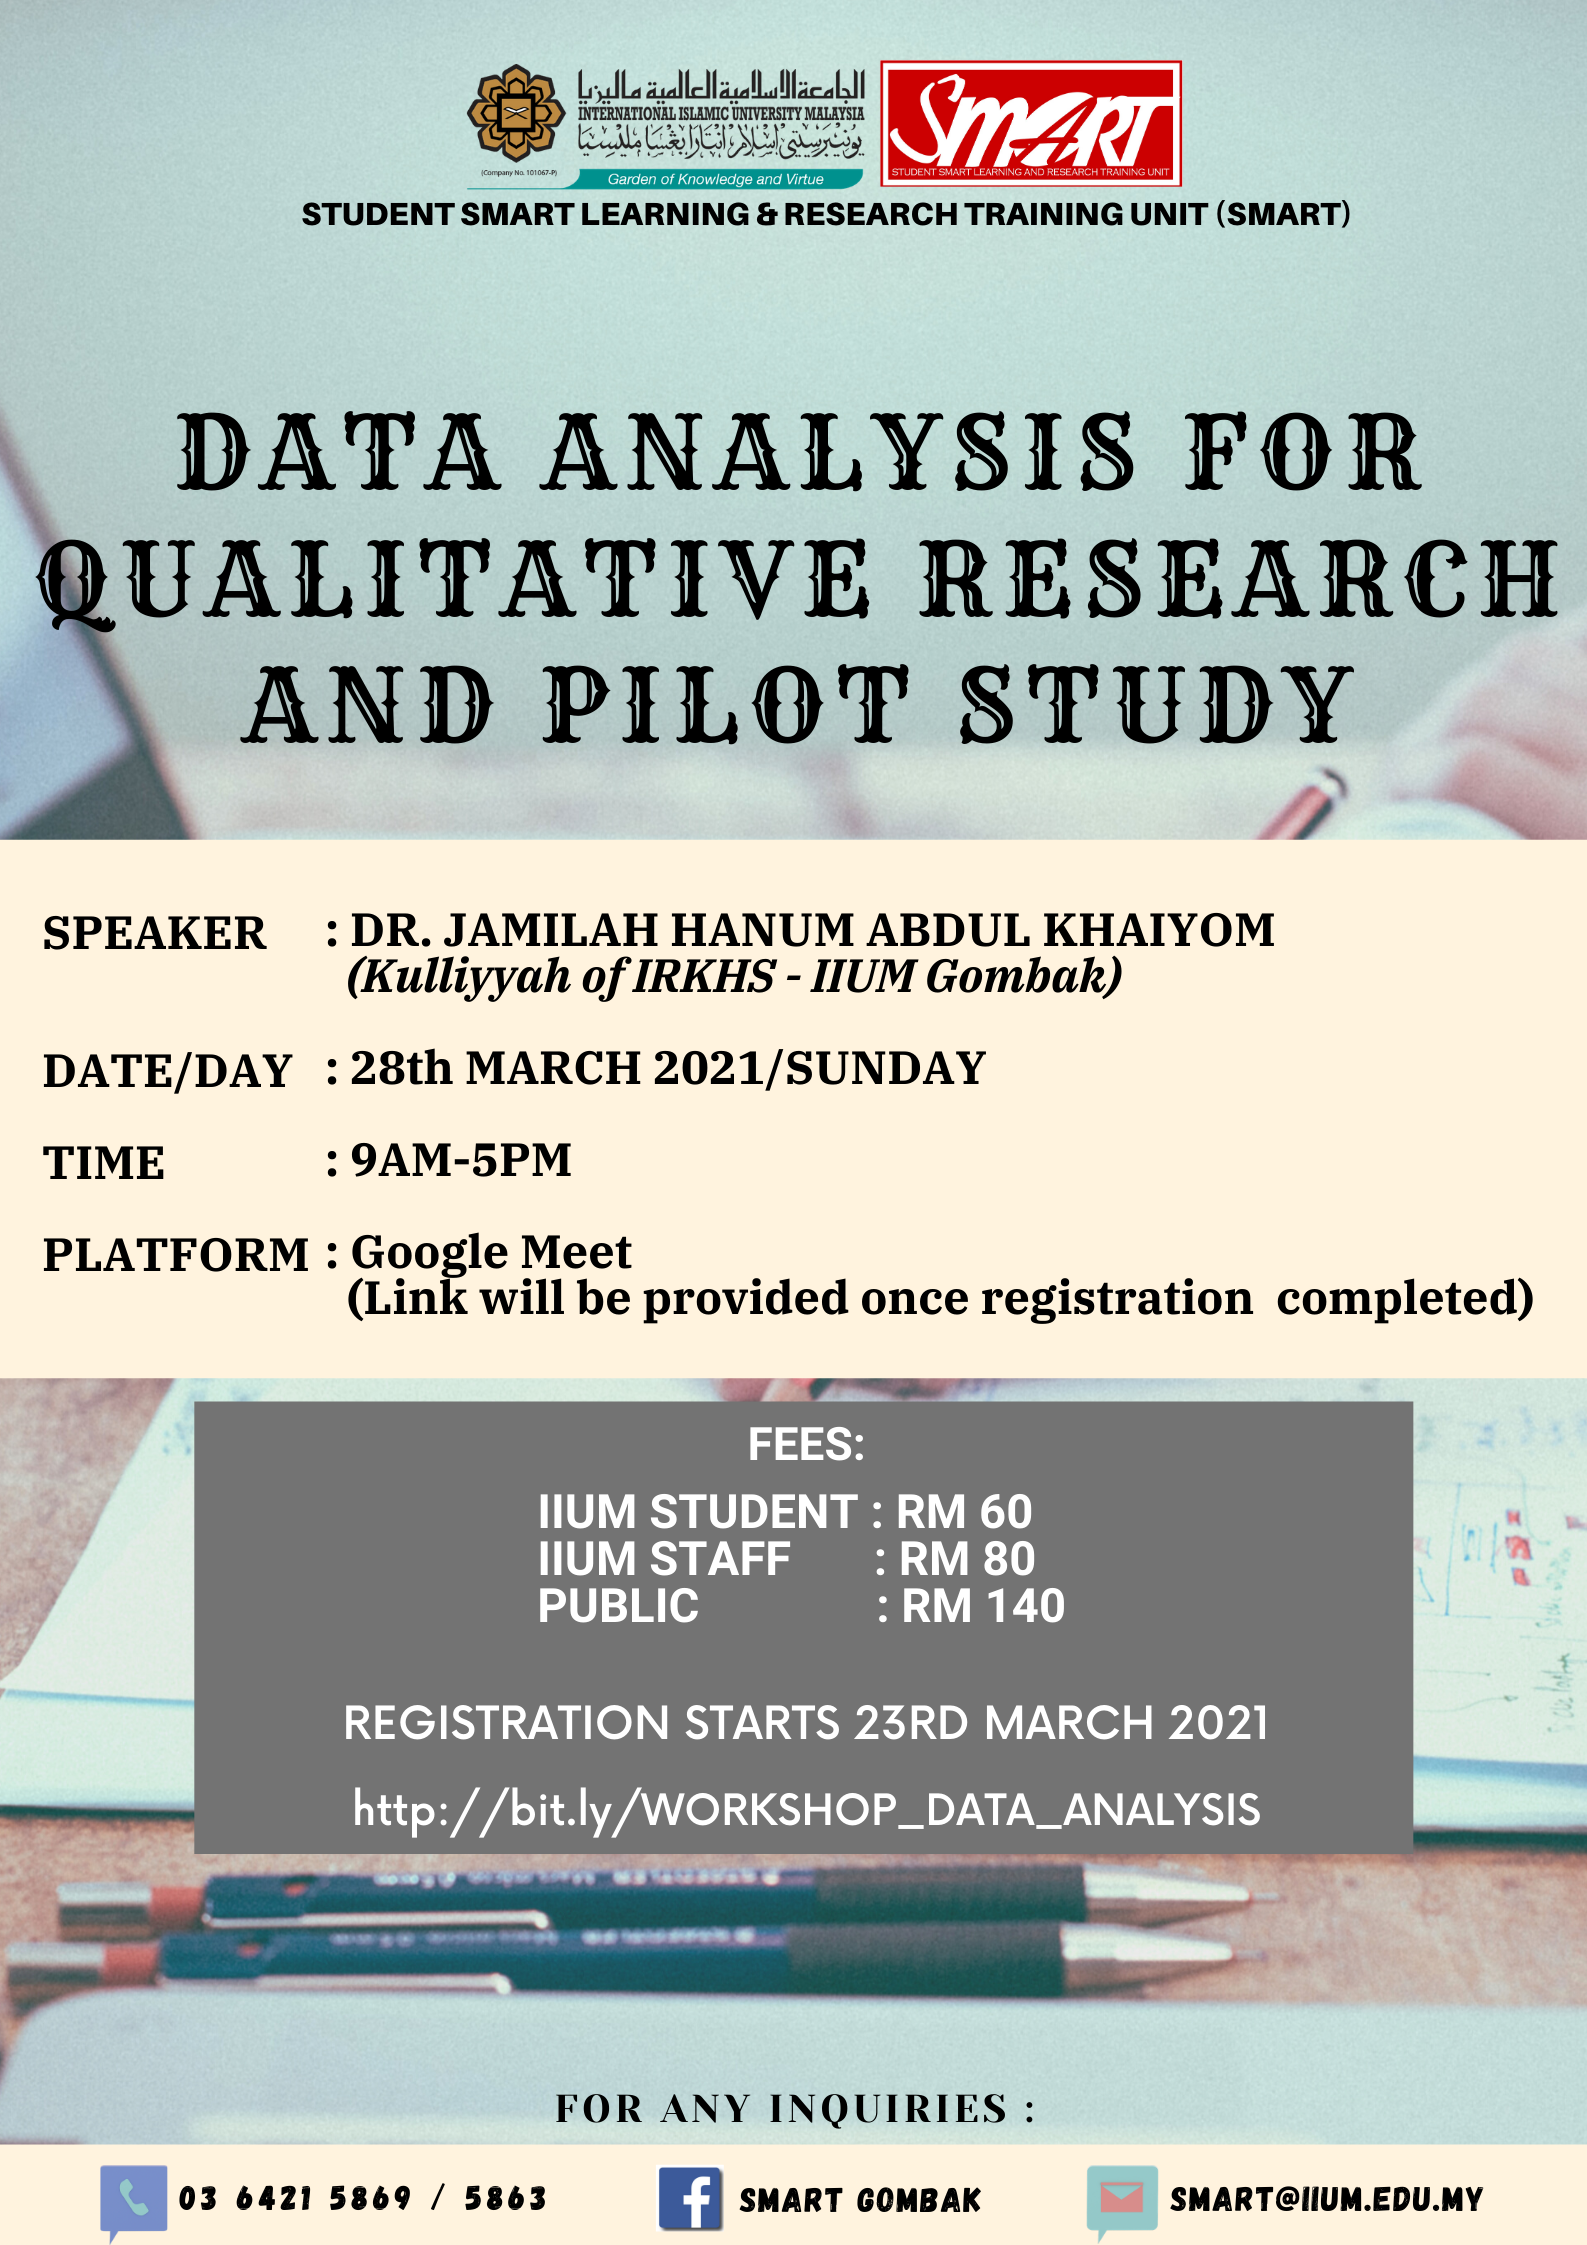 WORKSHOP : DATA ANALYSIS FOR QUALITATIVE RESEARCH AND PILOT STUDY